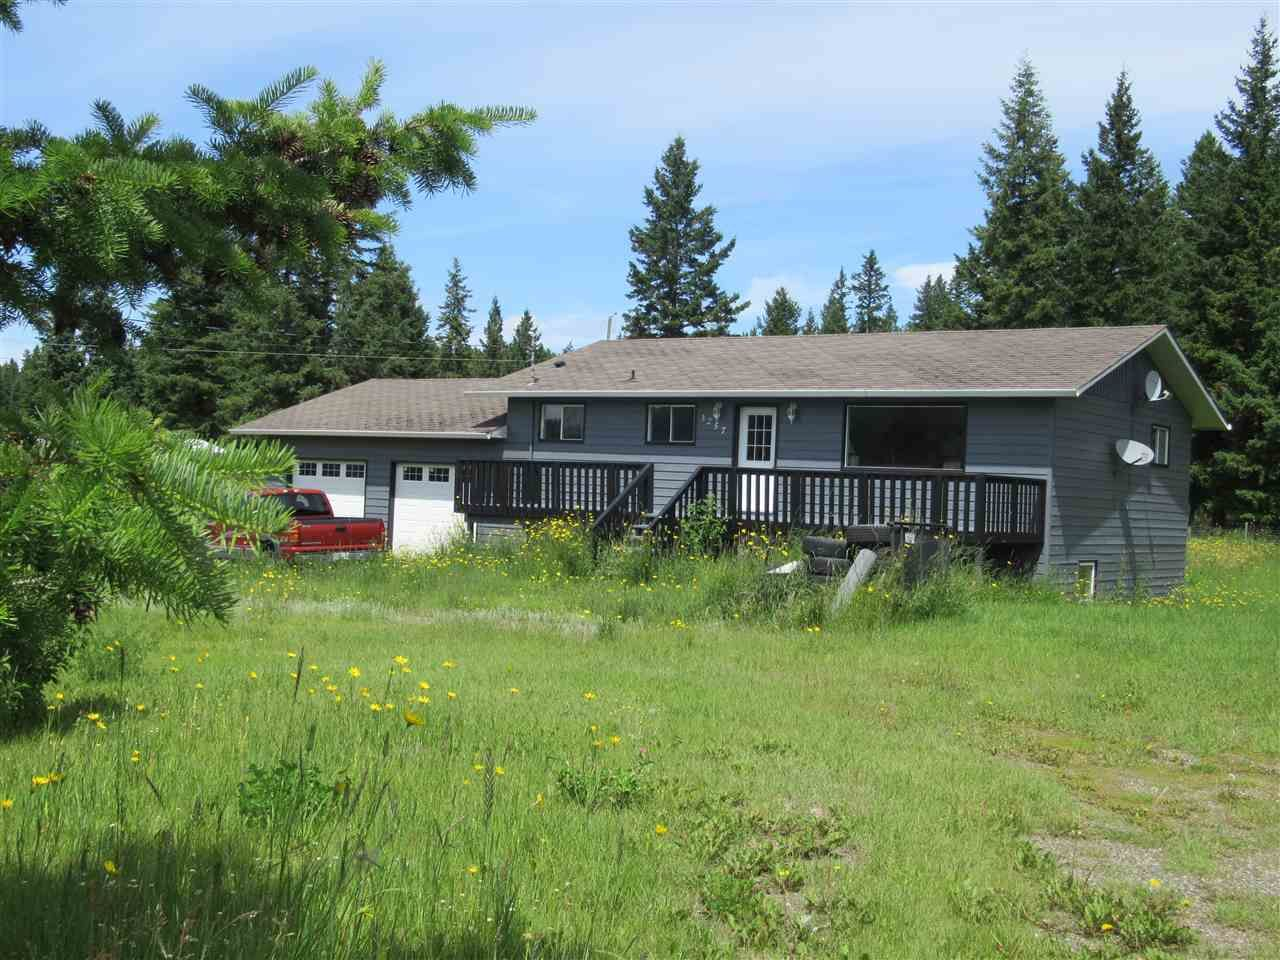 Photo 21: Photos: 3257 HINSCHE Road in Williams Lake: Williams Lake - Rural East House for sale (Williams Lake (Zone 27))  : MLS®# R2477340